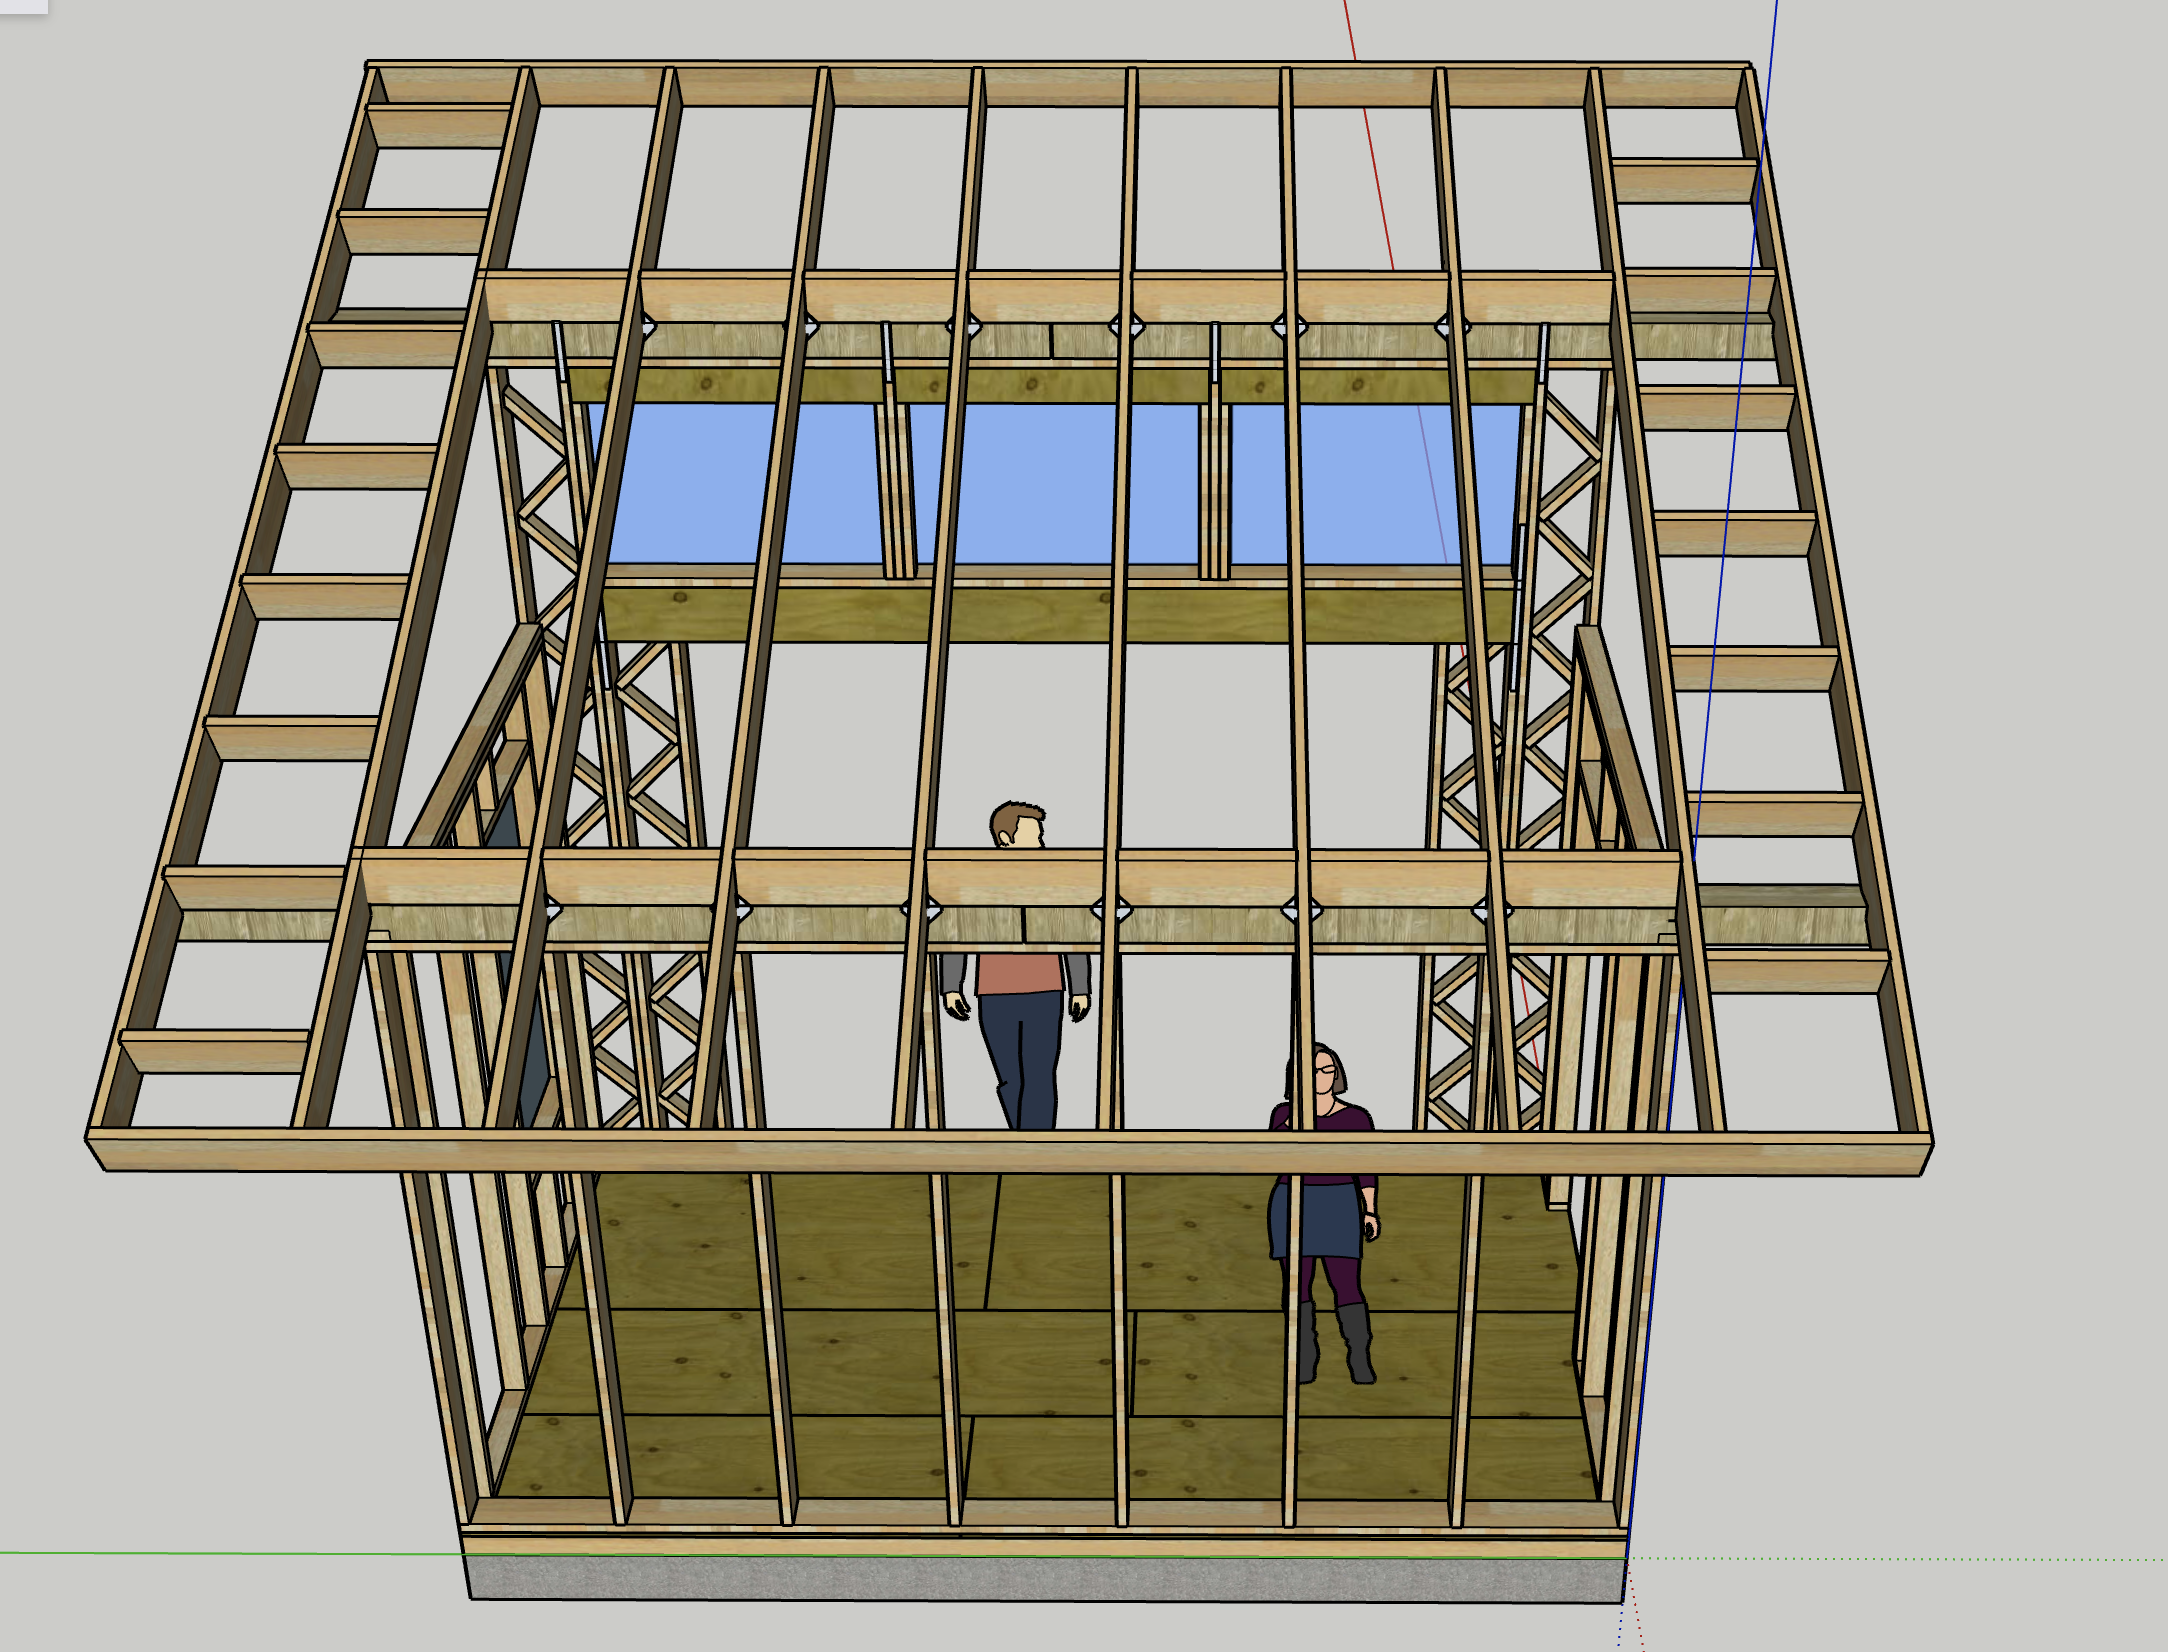 Shed / workshop framing design--is it too ambitious?-screen-shot-2020-04-25-3.36.54-pm.png